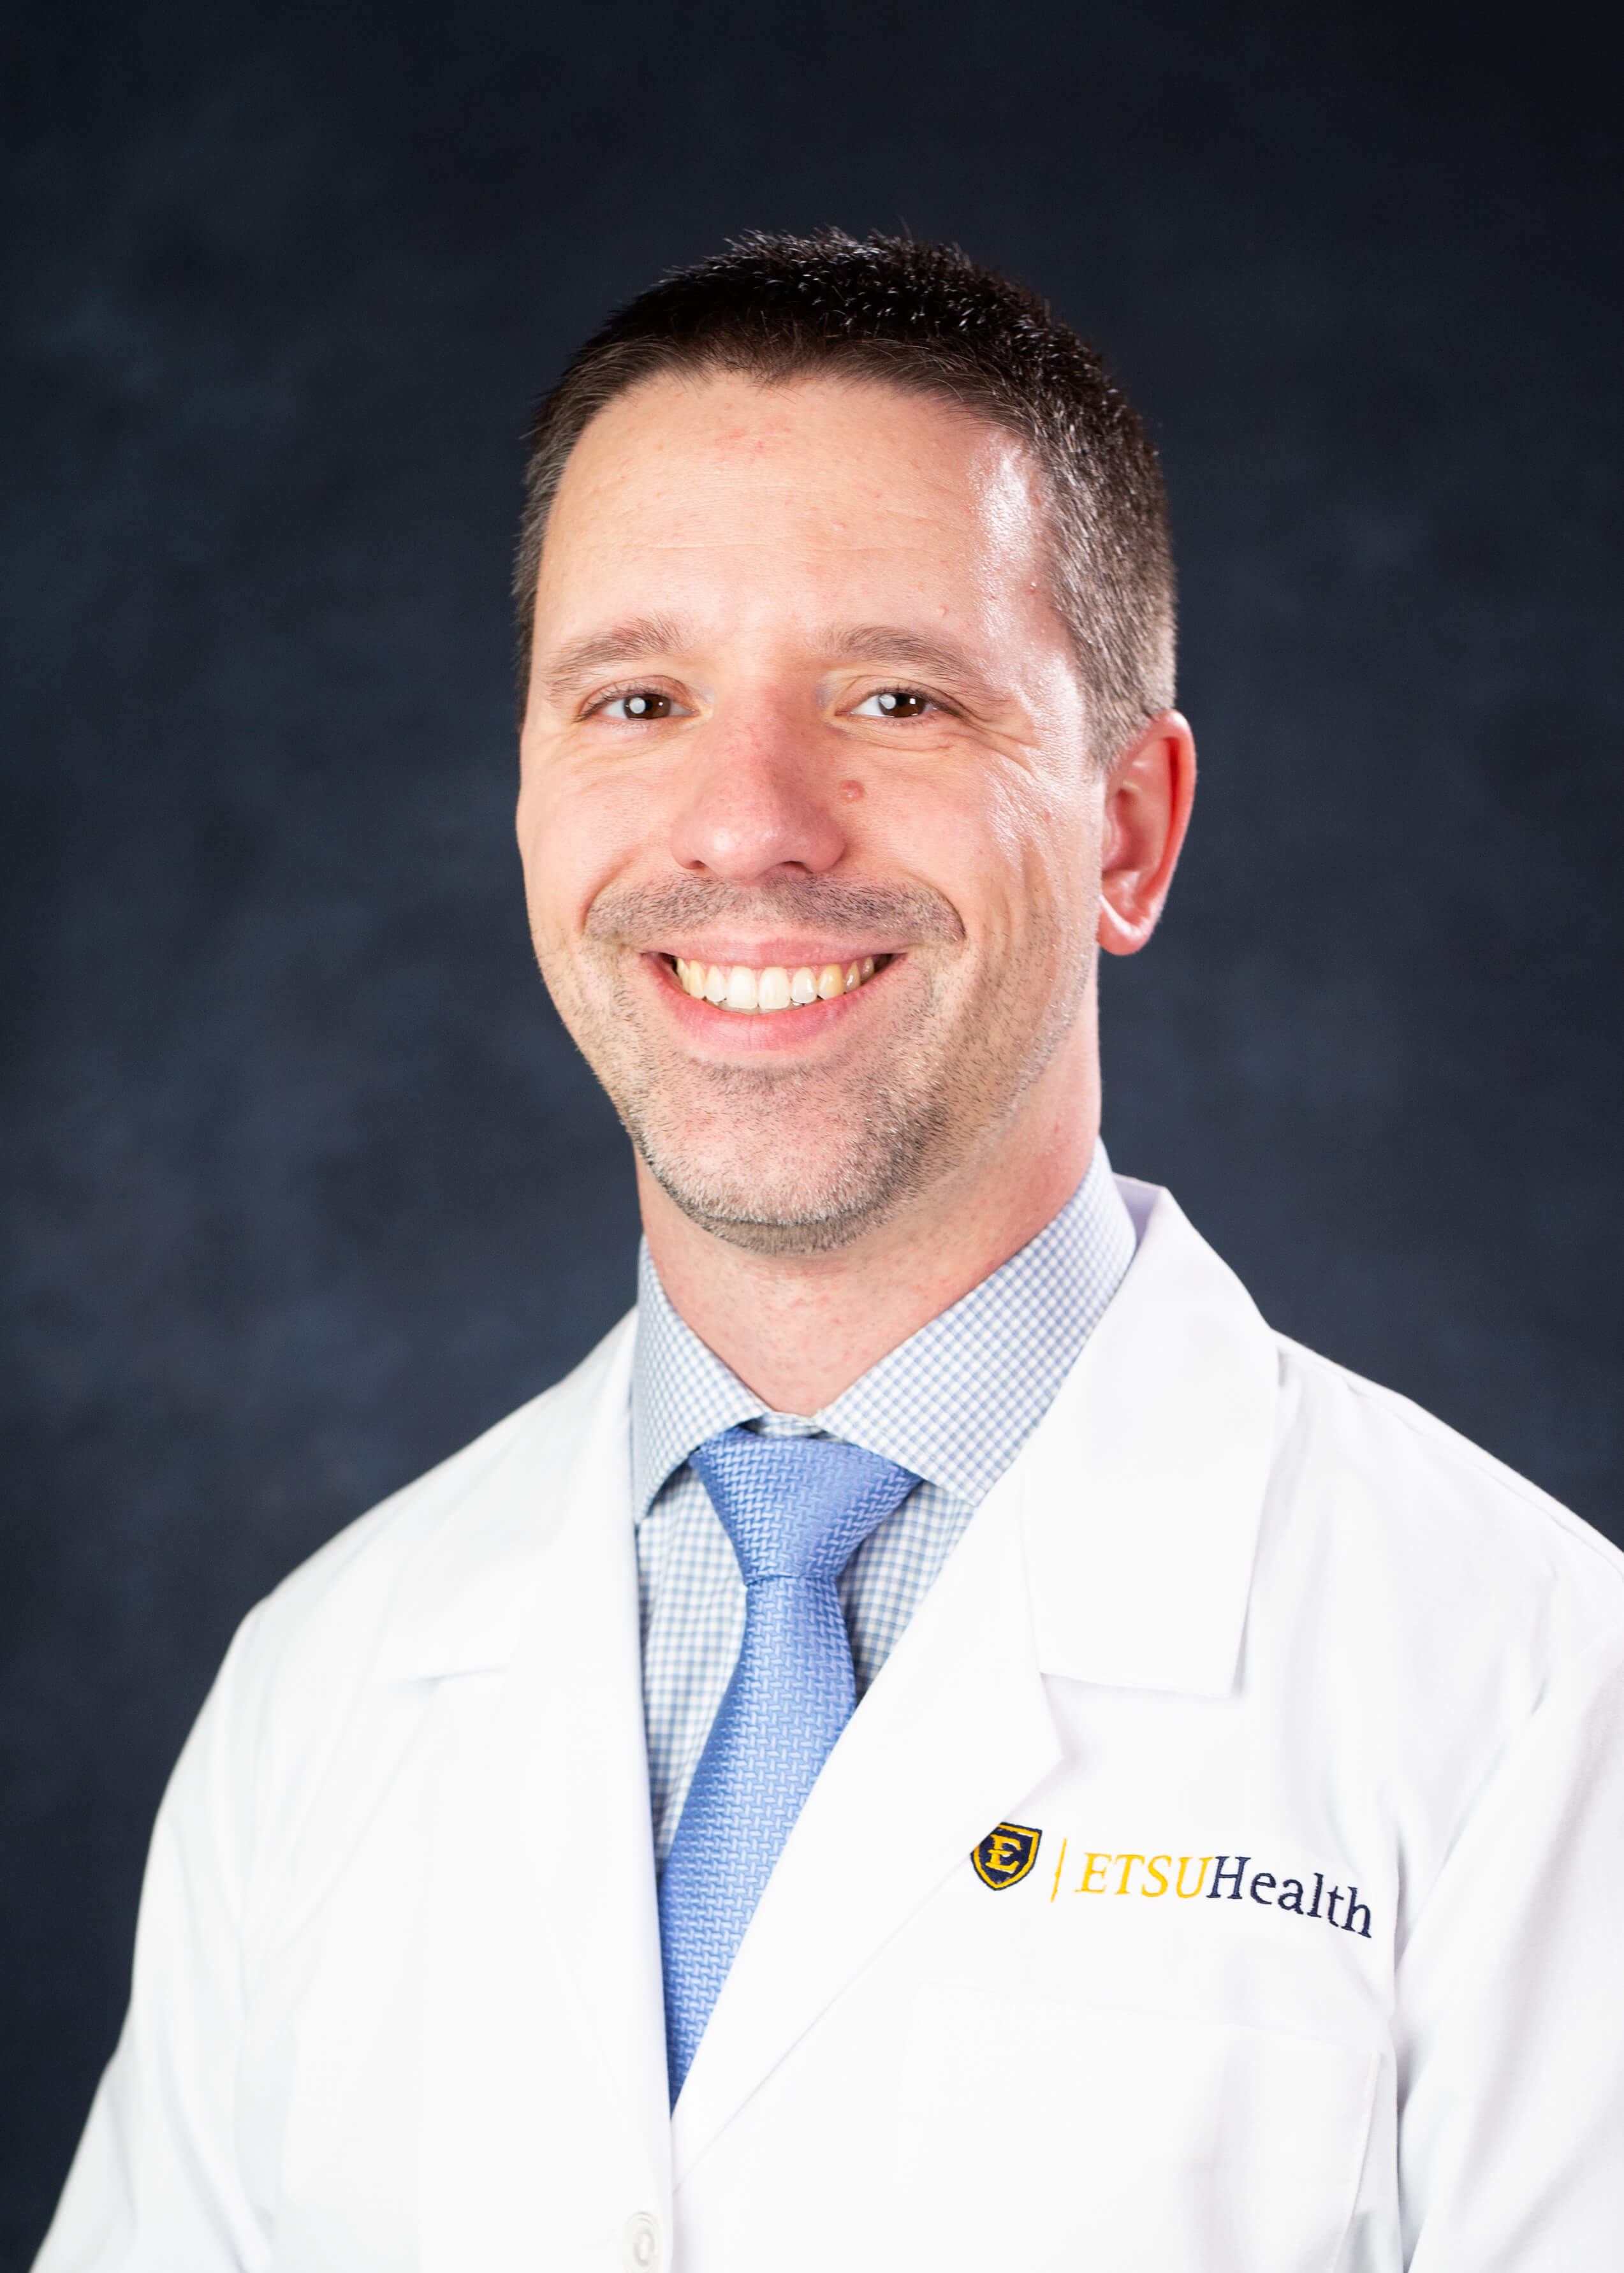 Photo of Nathaniel Justice, M.D.